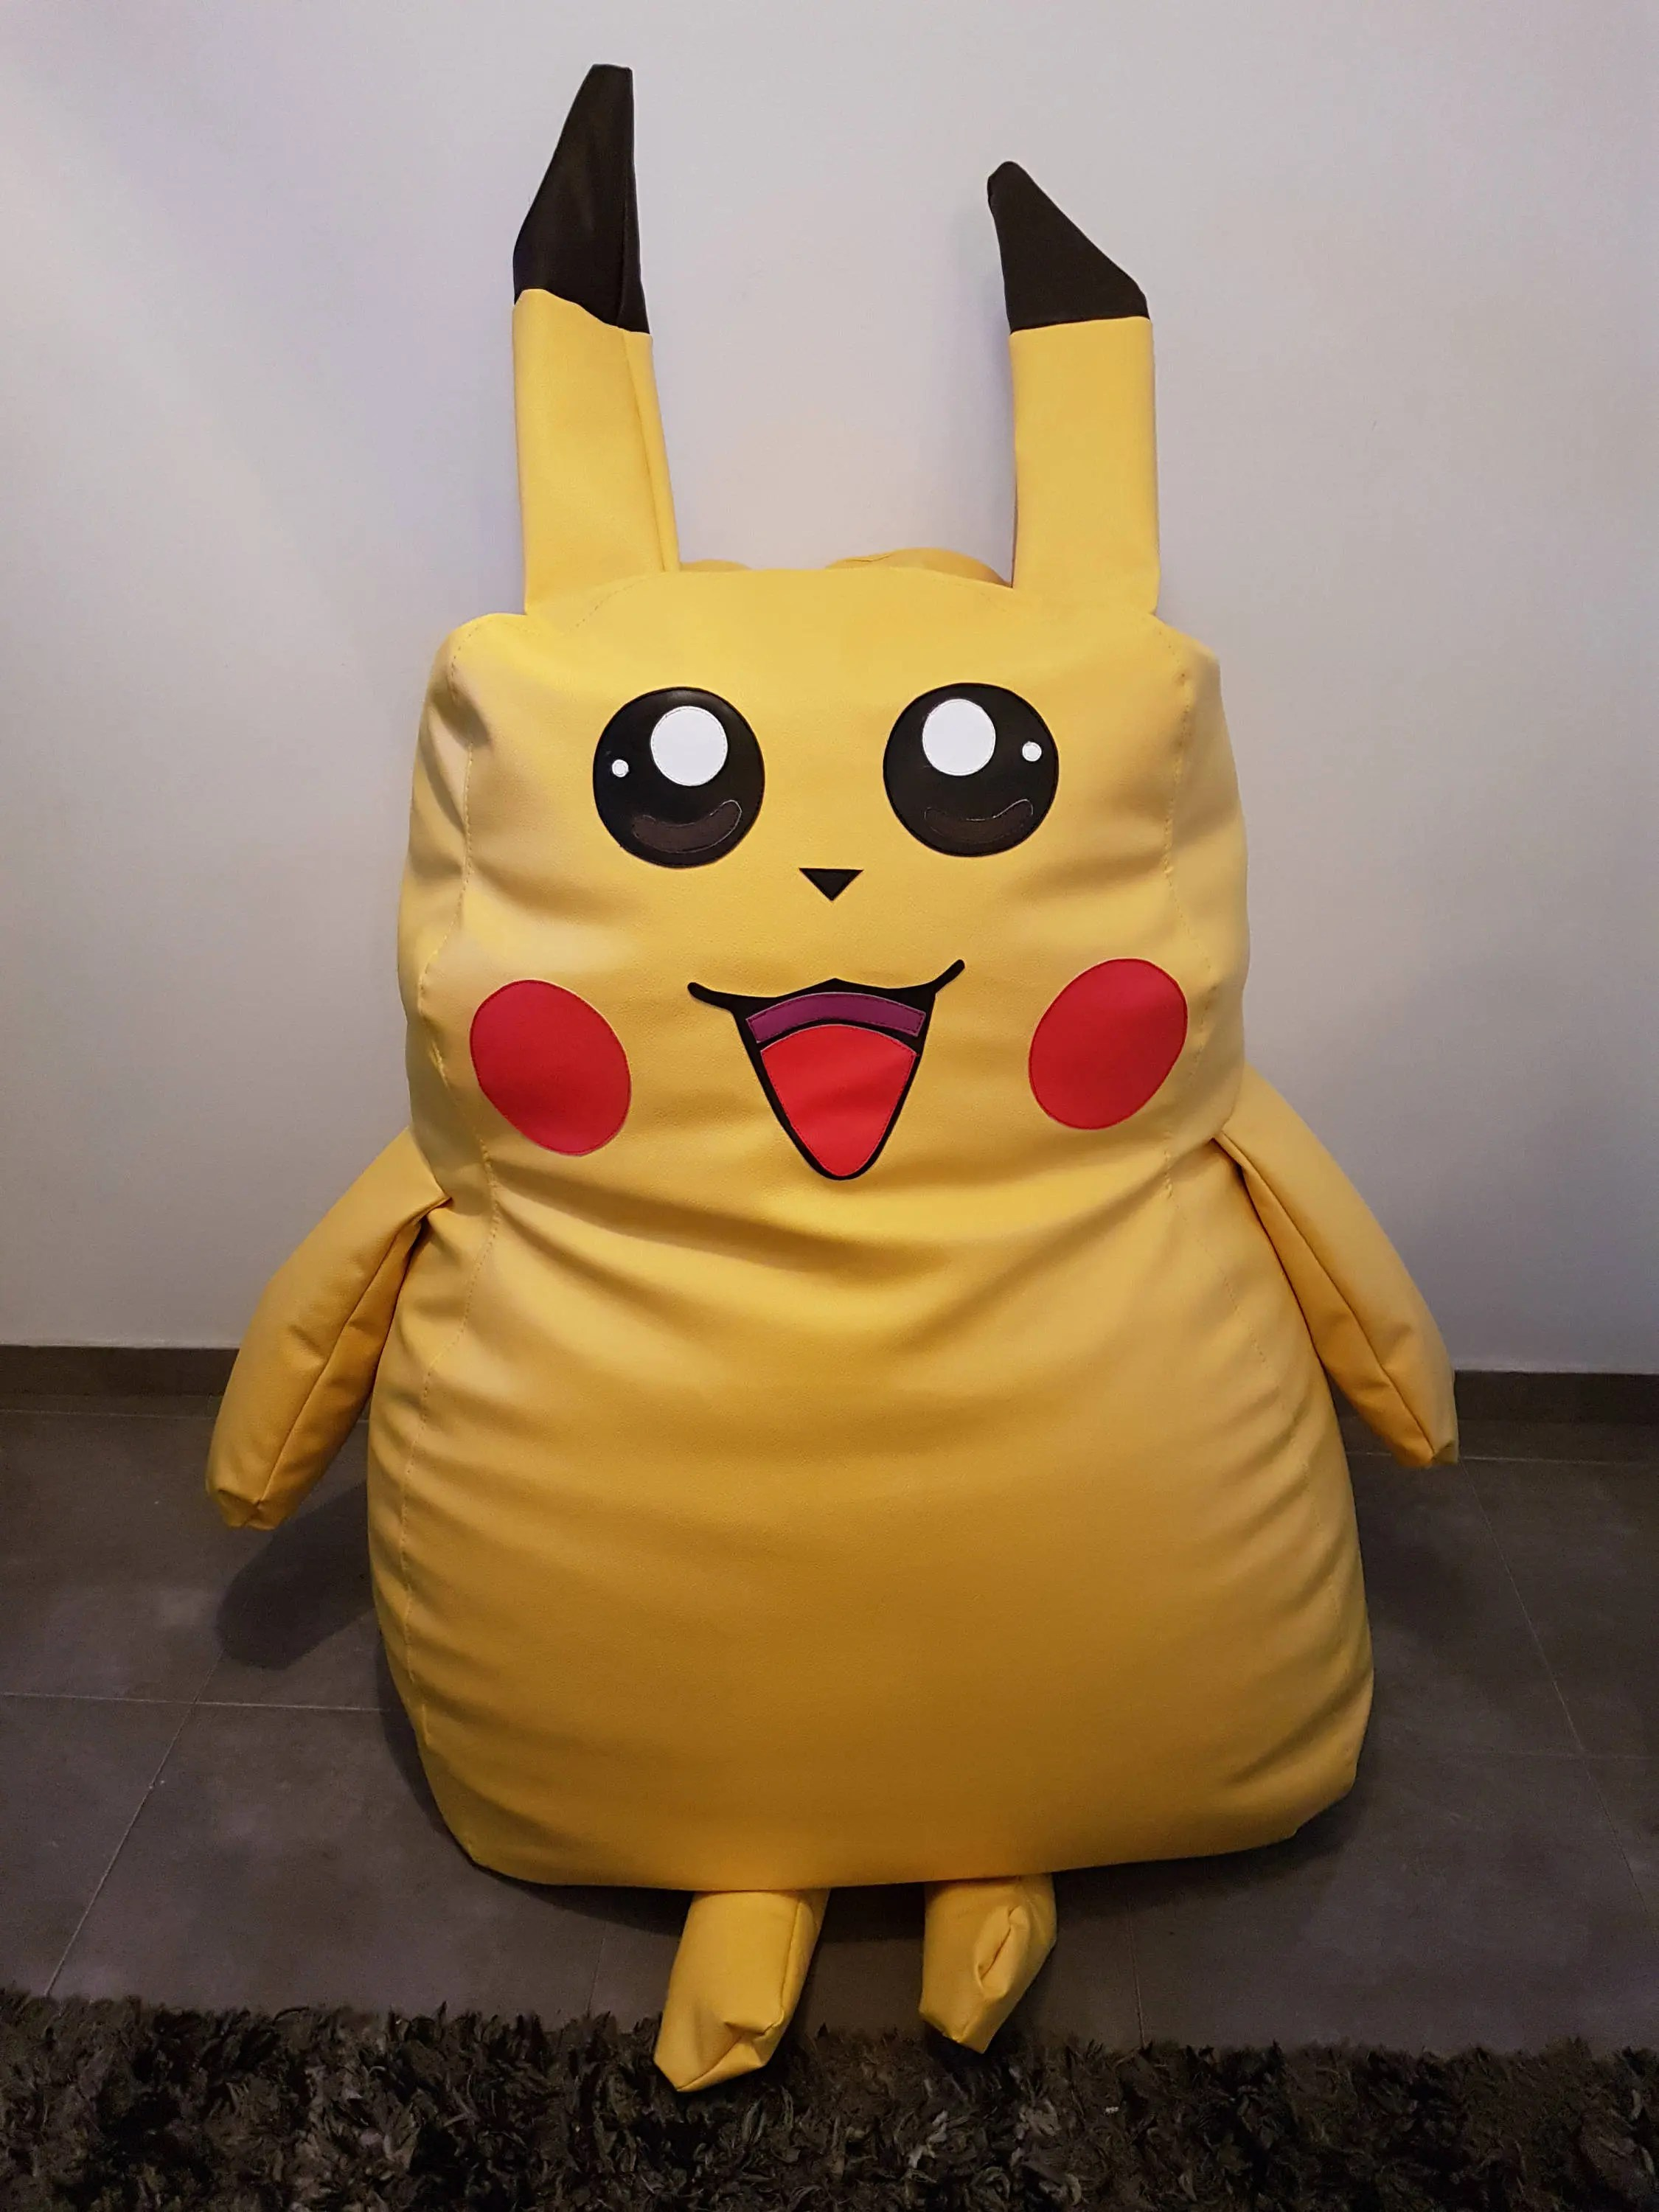 Where Can I Buy A Bean Bag Chair Large Pokemon Pikachu Bean Bag Chair Handcrafted